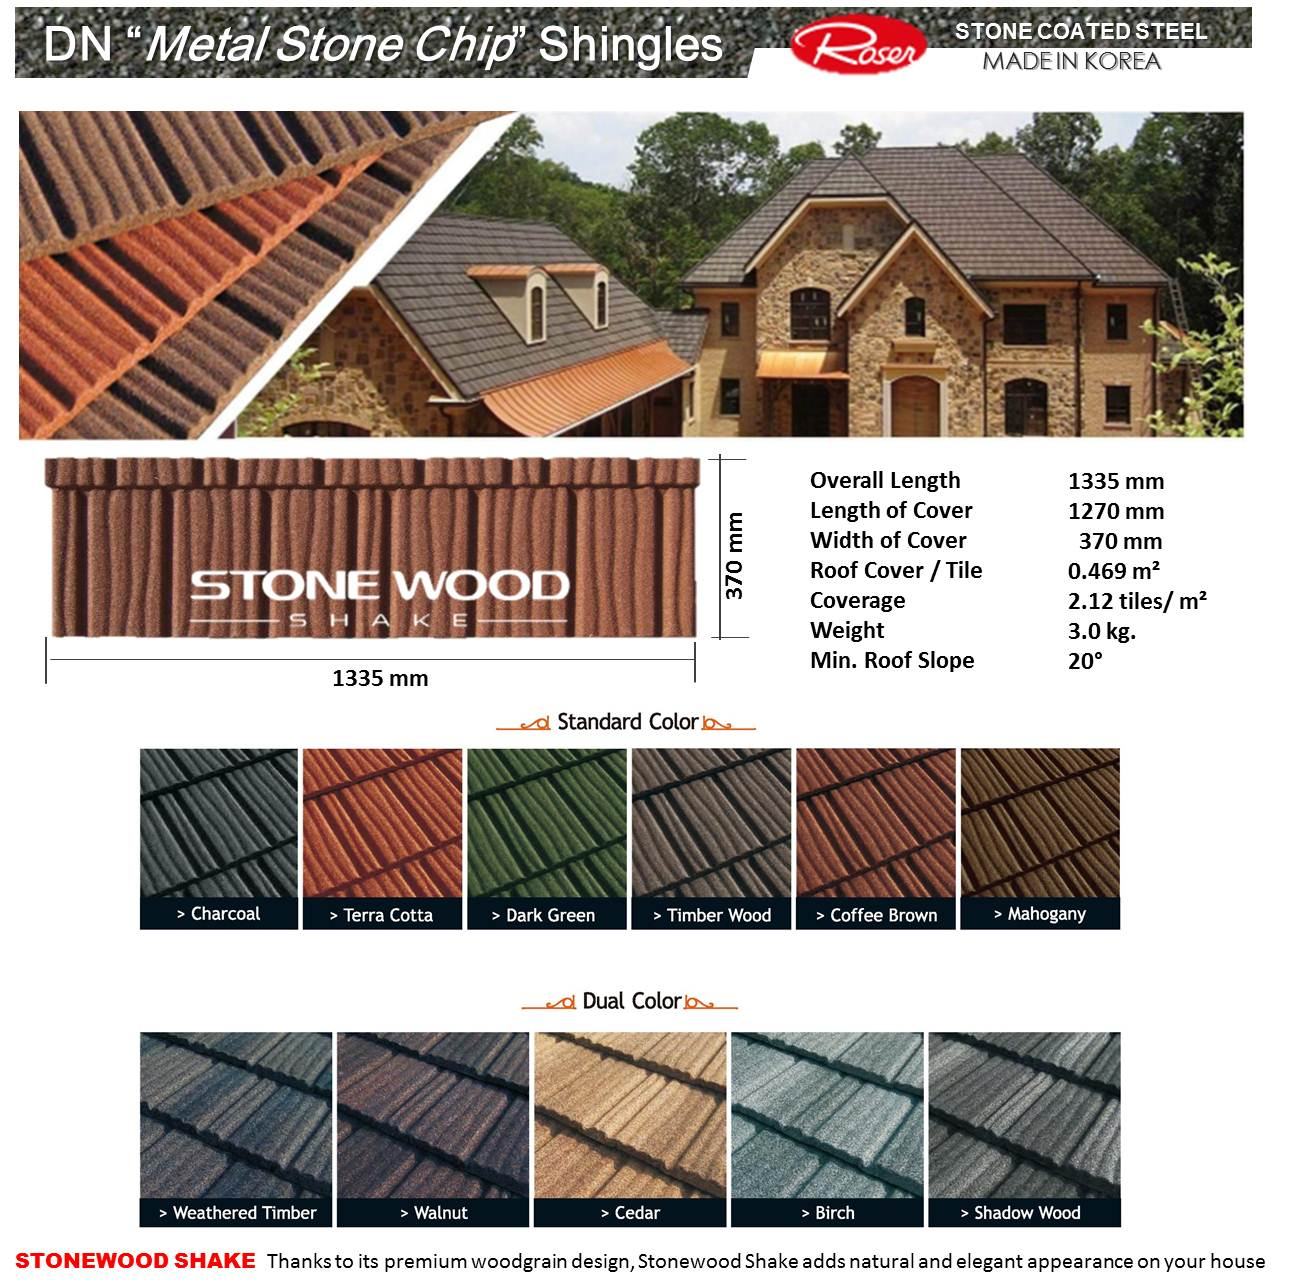 Product Line Dn Steel